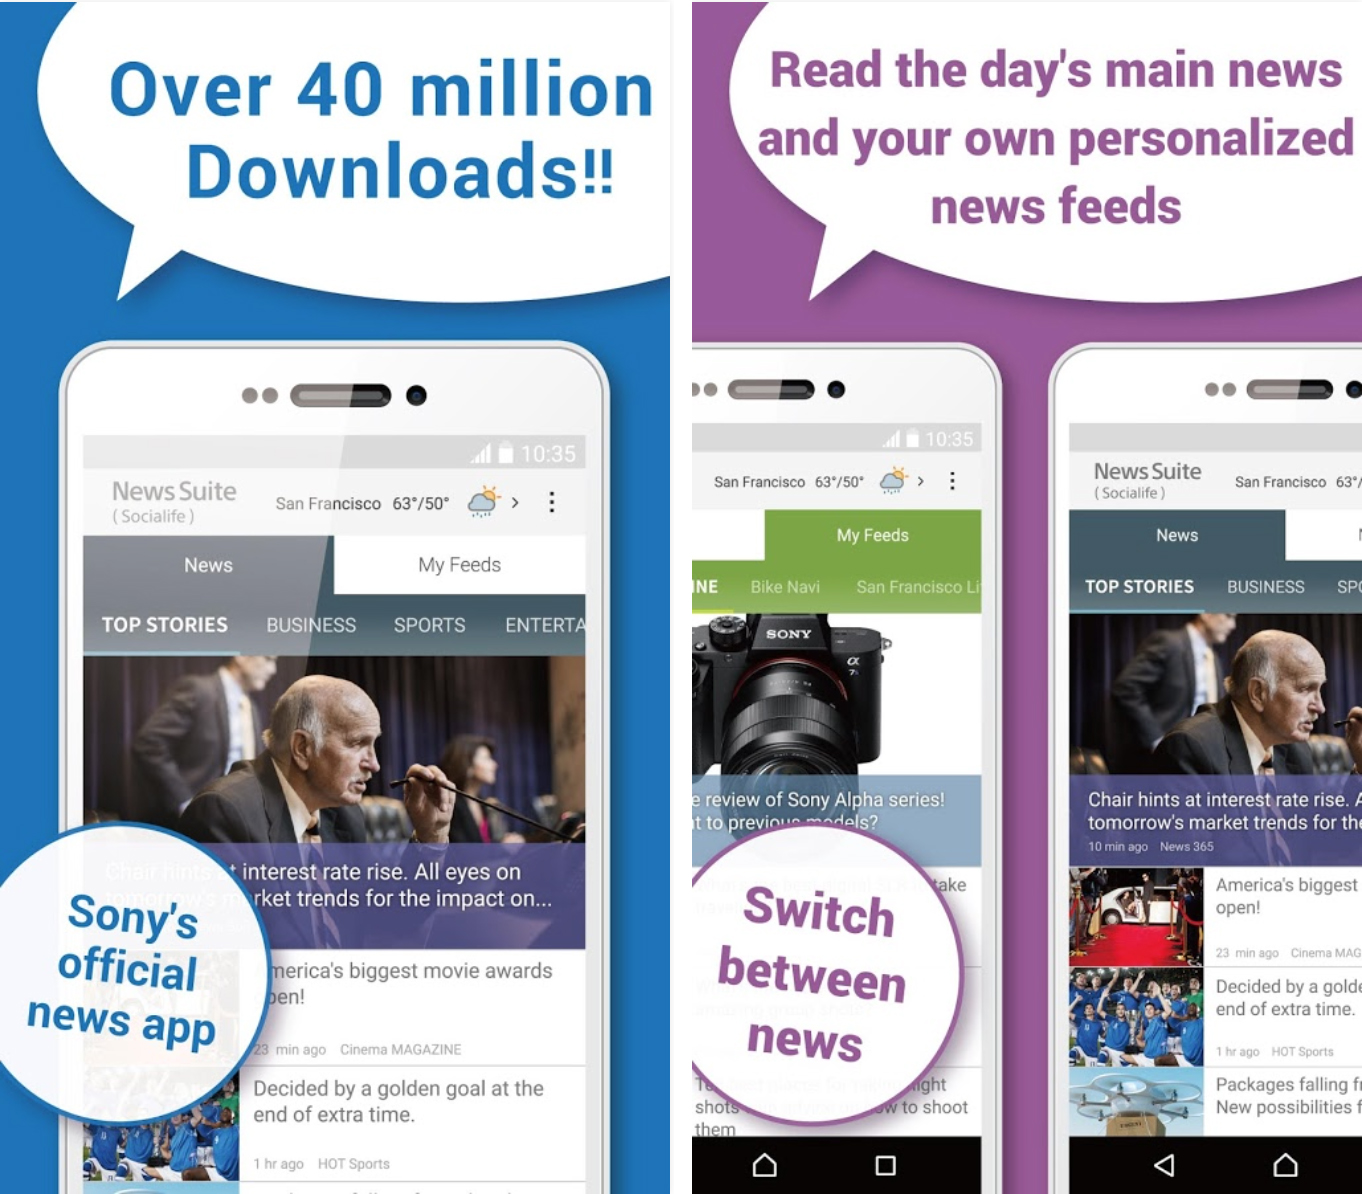 Sony News Suite 5.0.06.31.1 app